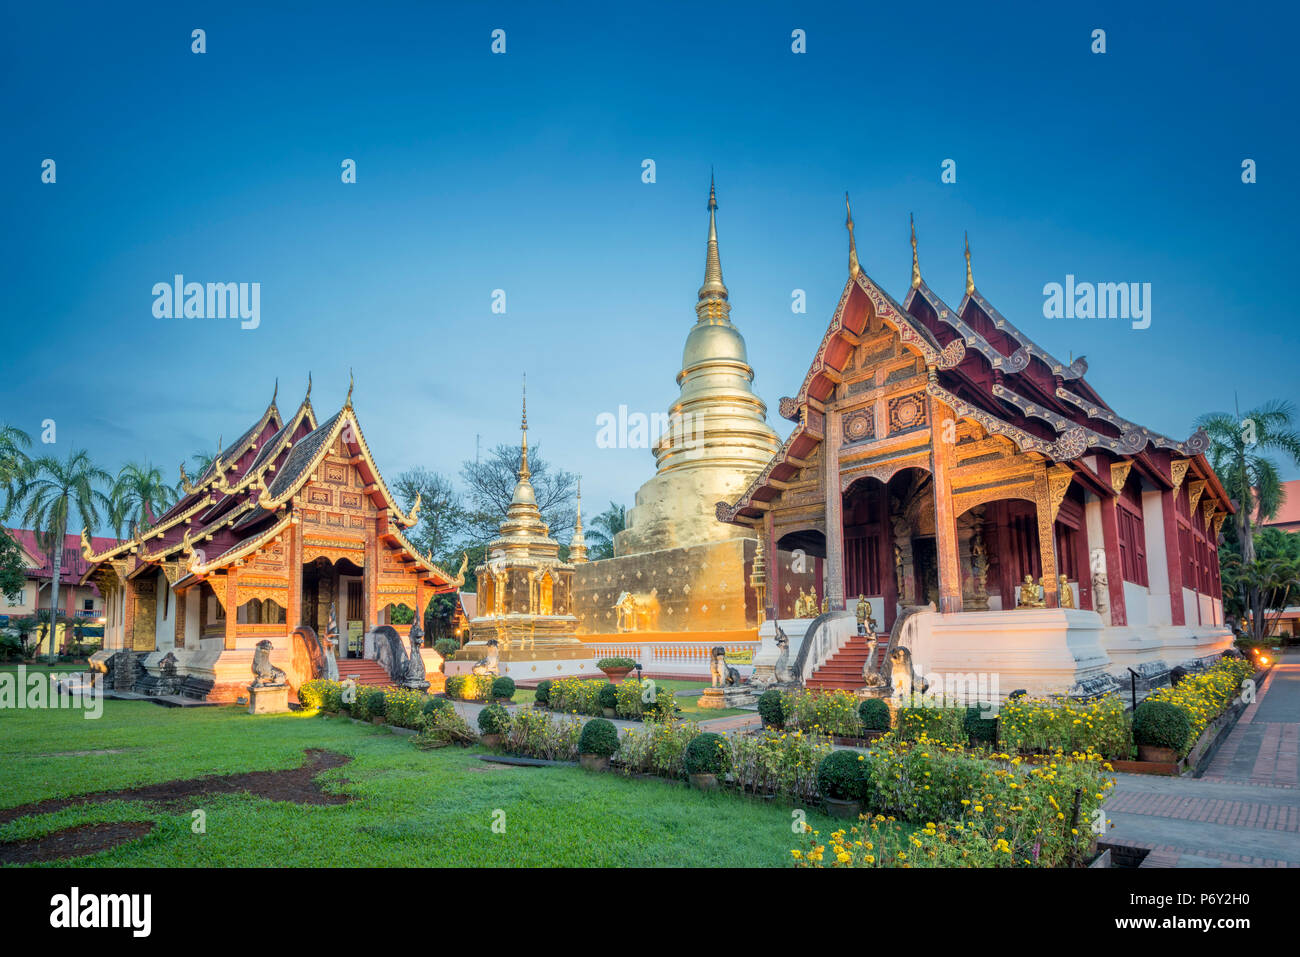 Wat Phra Singh, Chiang Mai, Thailand. - Stock Image